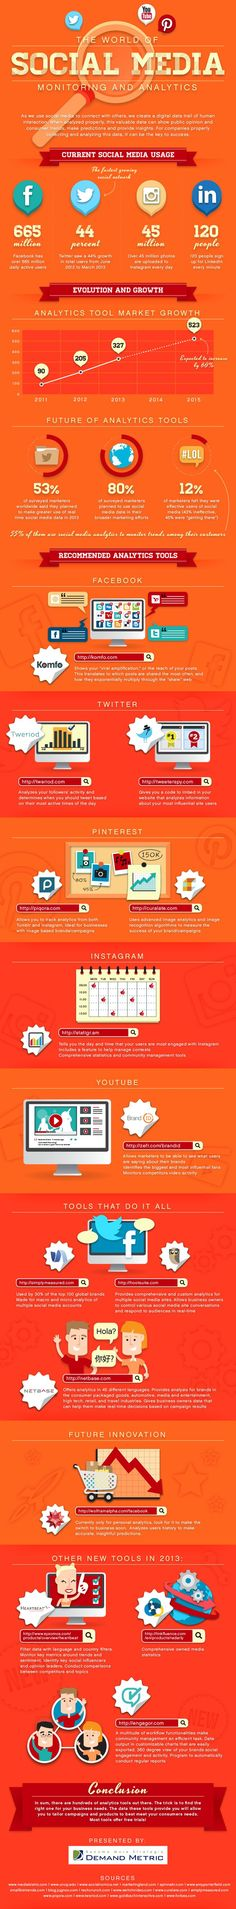 The World Of Social Media Monitoring -14 Social Media Analytics Tools #infographic